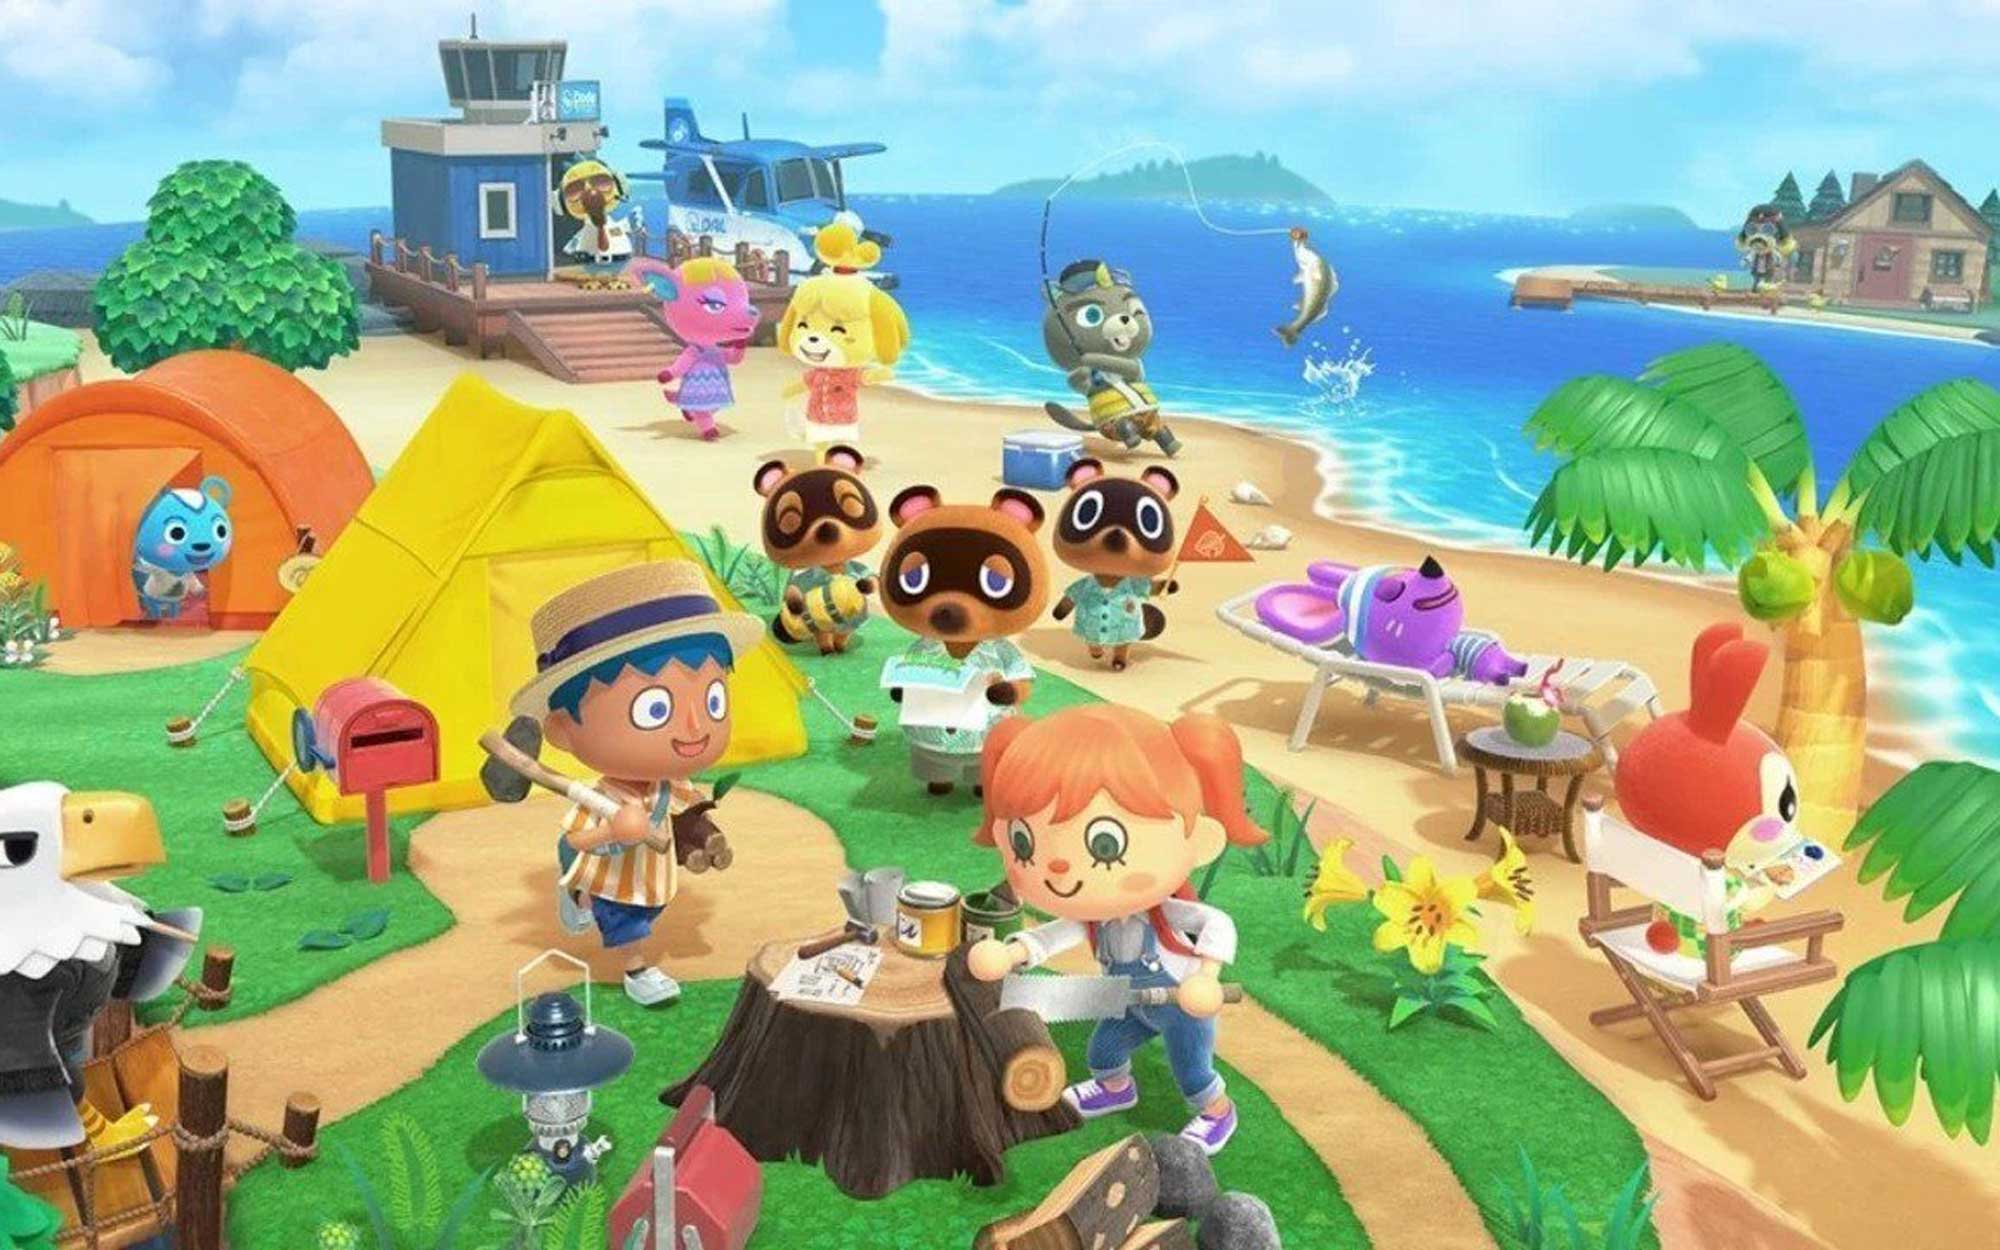 A wide range of Animal Crossing characters, including human villagers and animal neighbors, on an island surrounded by beach and a boat.